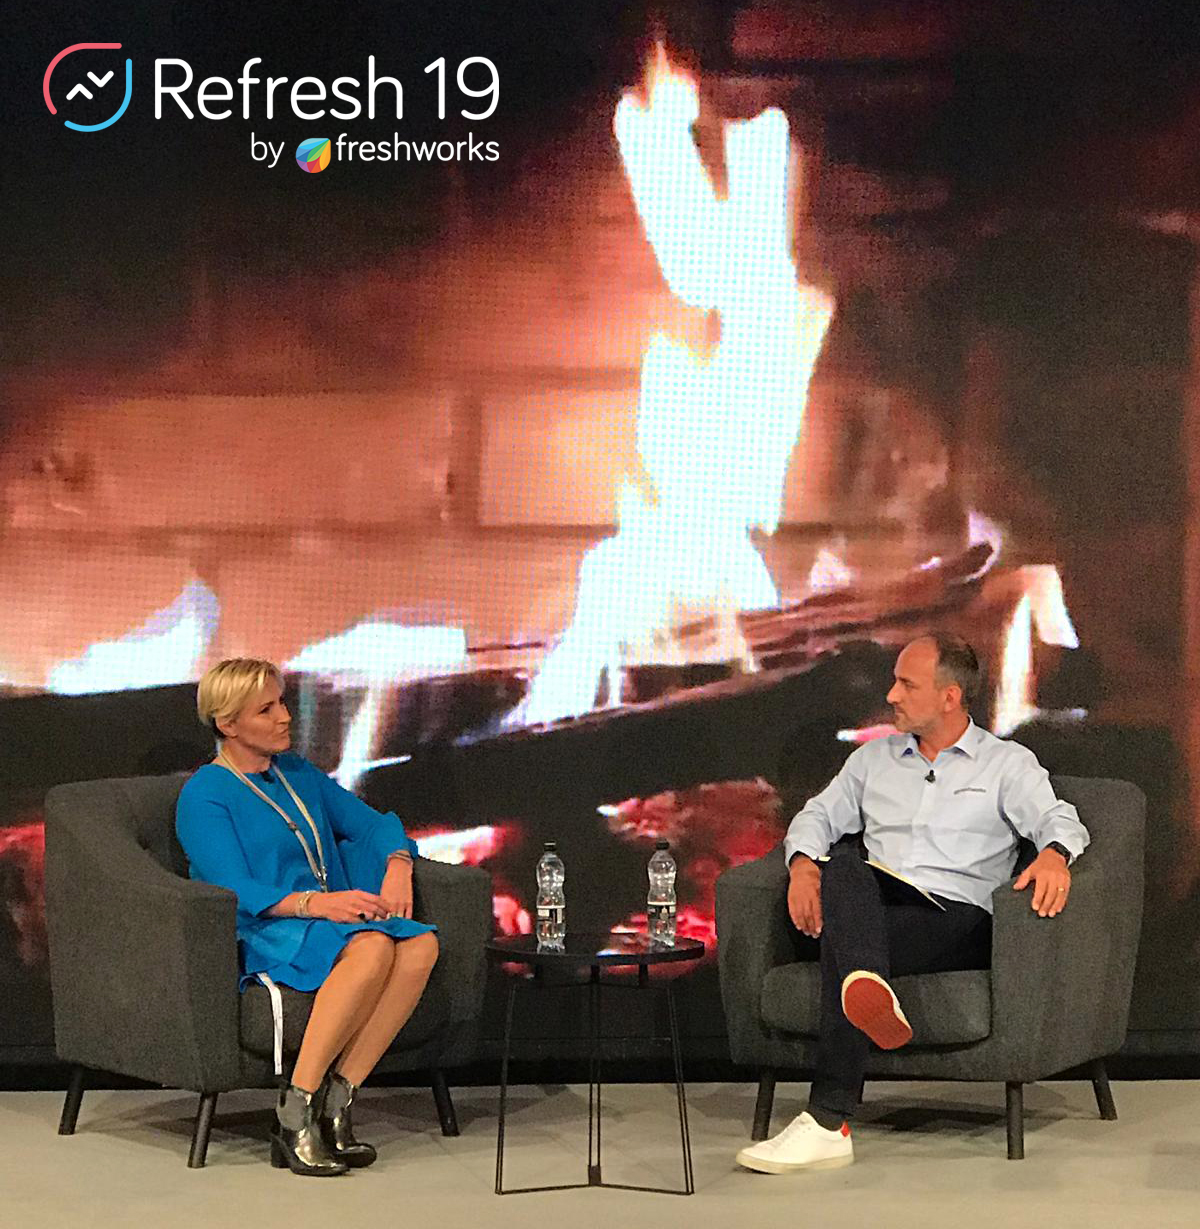 fireside-chat-sessions-at-refresh-19